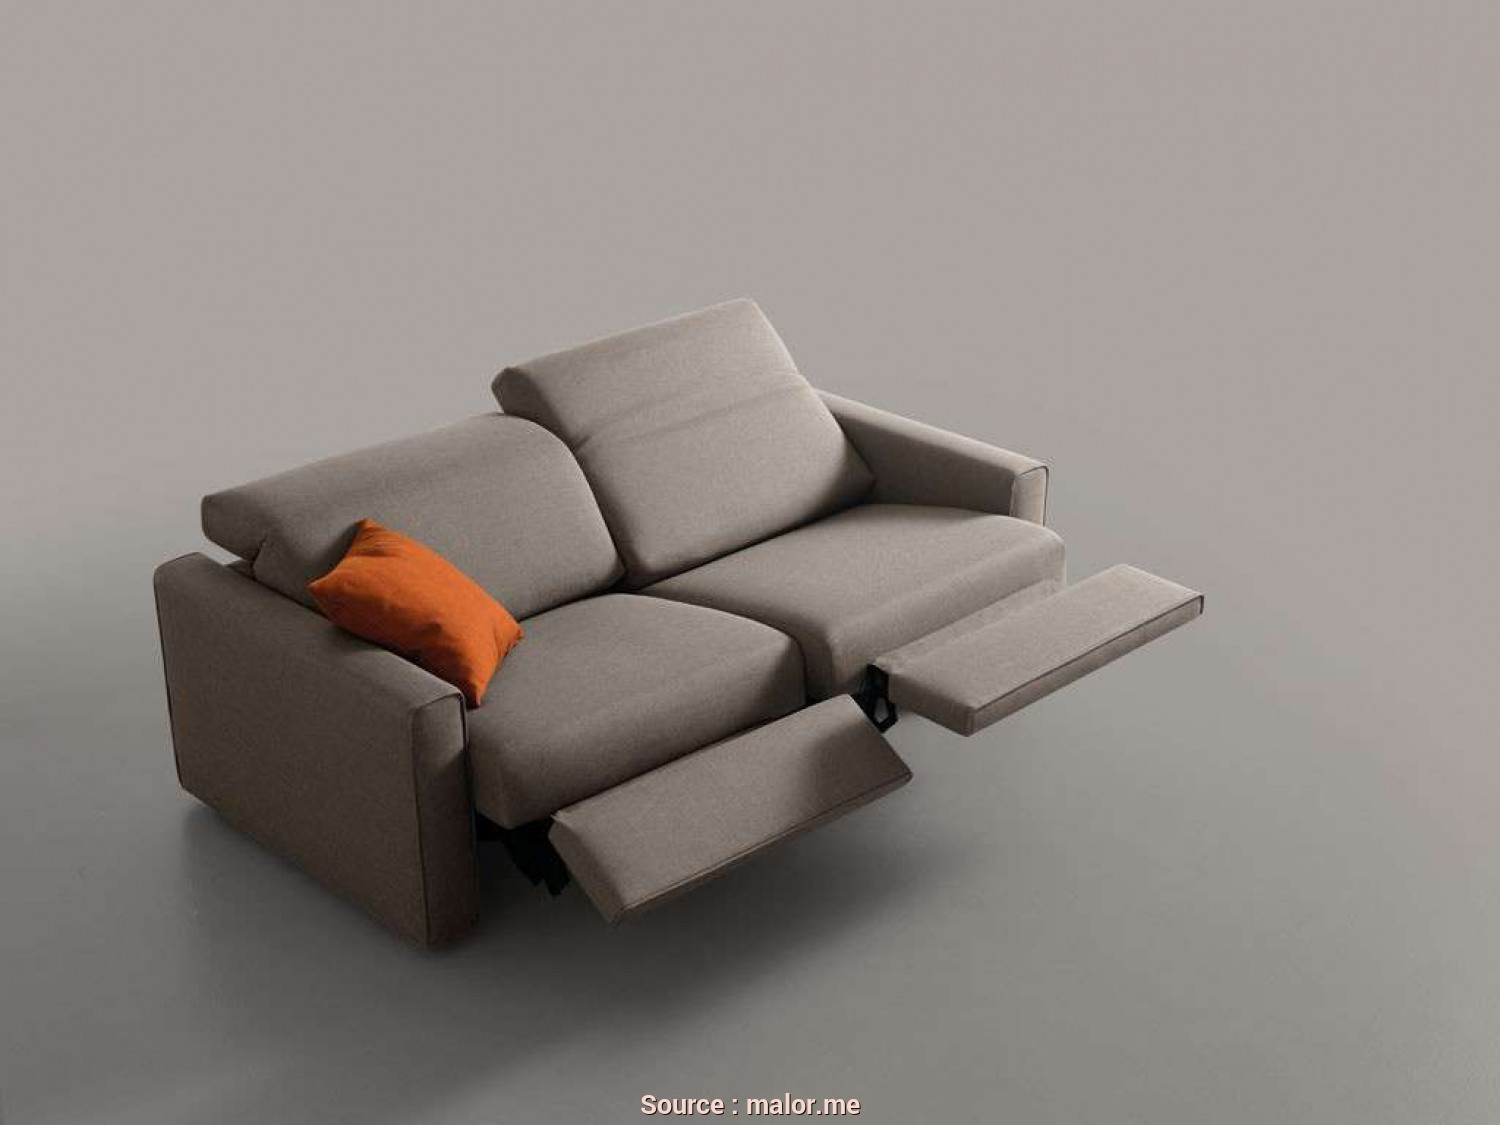 Divano, Posti, Sceslong, Bellissima Full Size Of Divani Ikea, Posti Divani Ikea 2 Posti Tessuto Divano, Chaise Longue